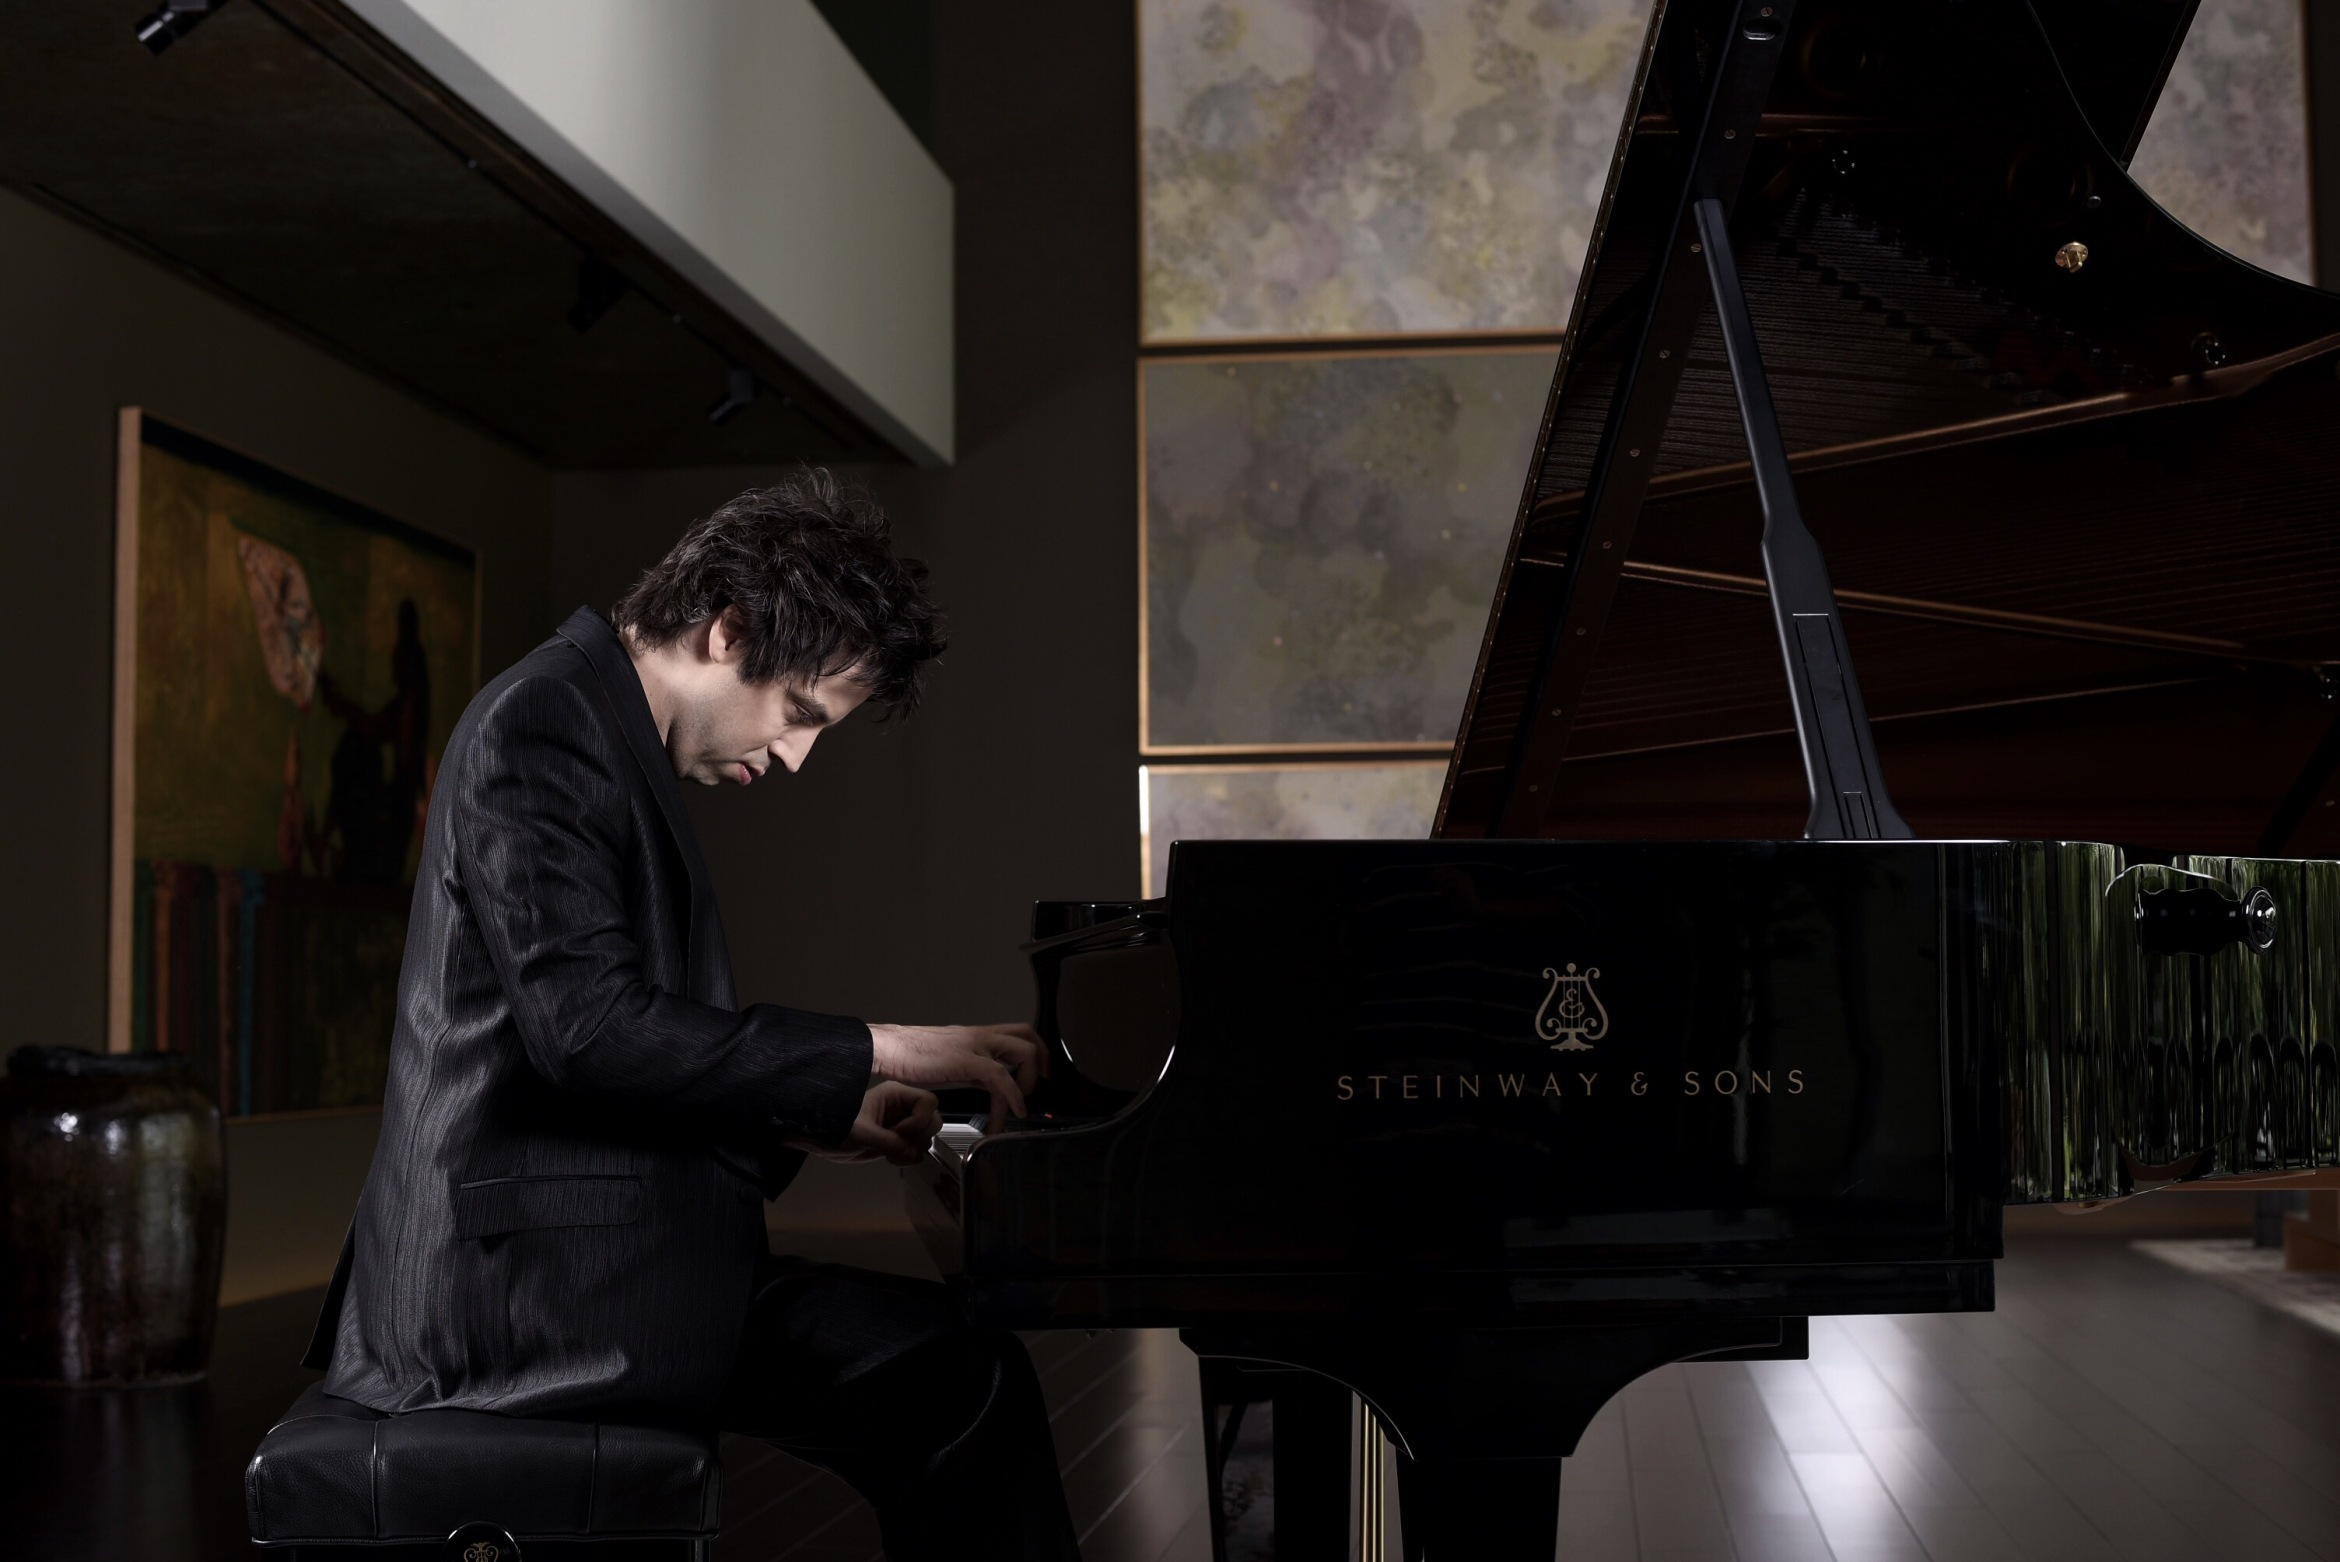 Dominic Ferris with Steinway